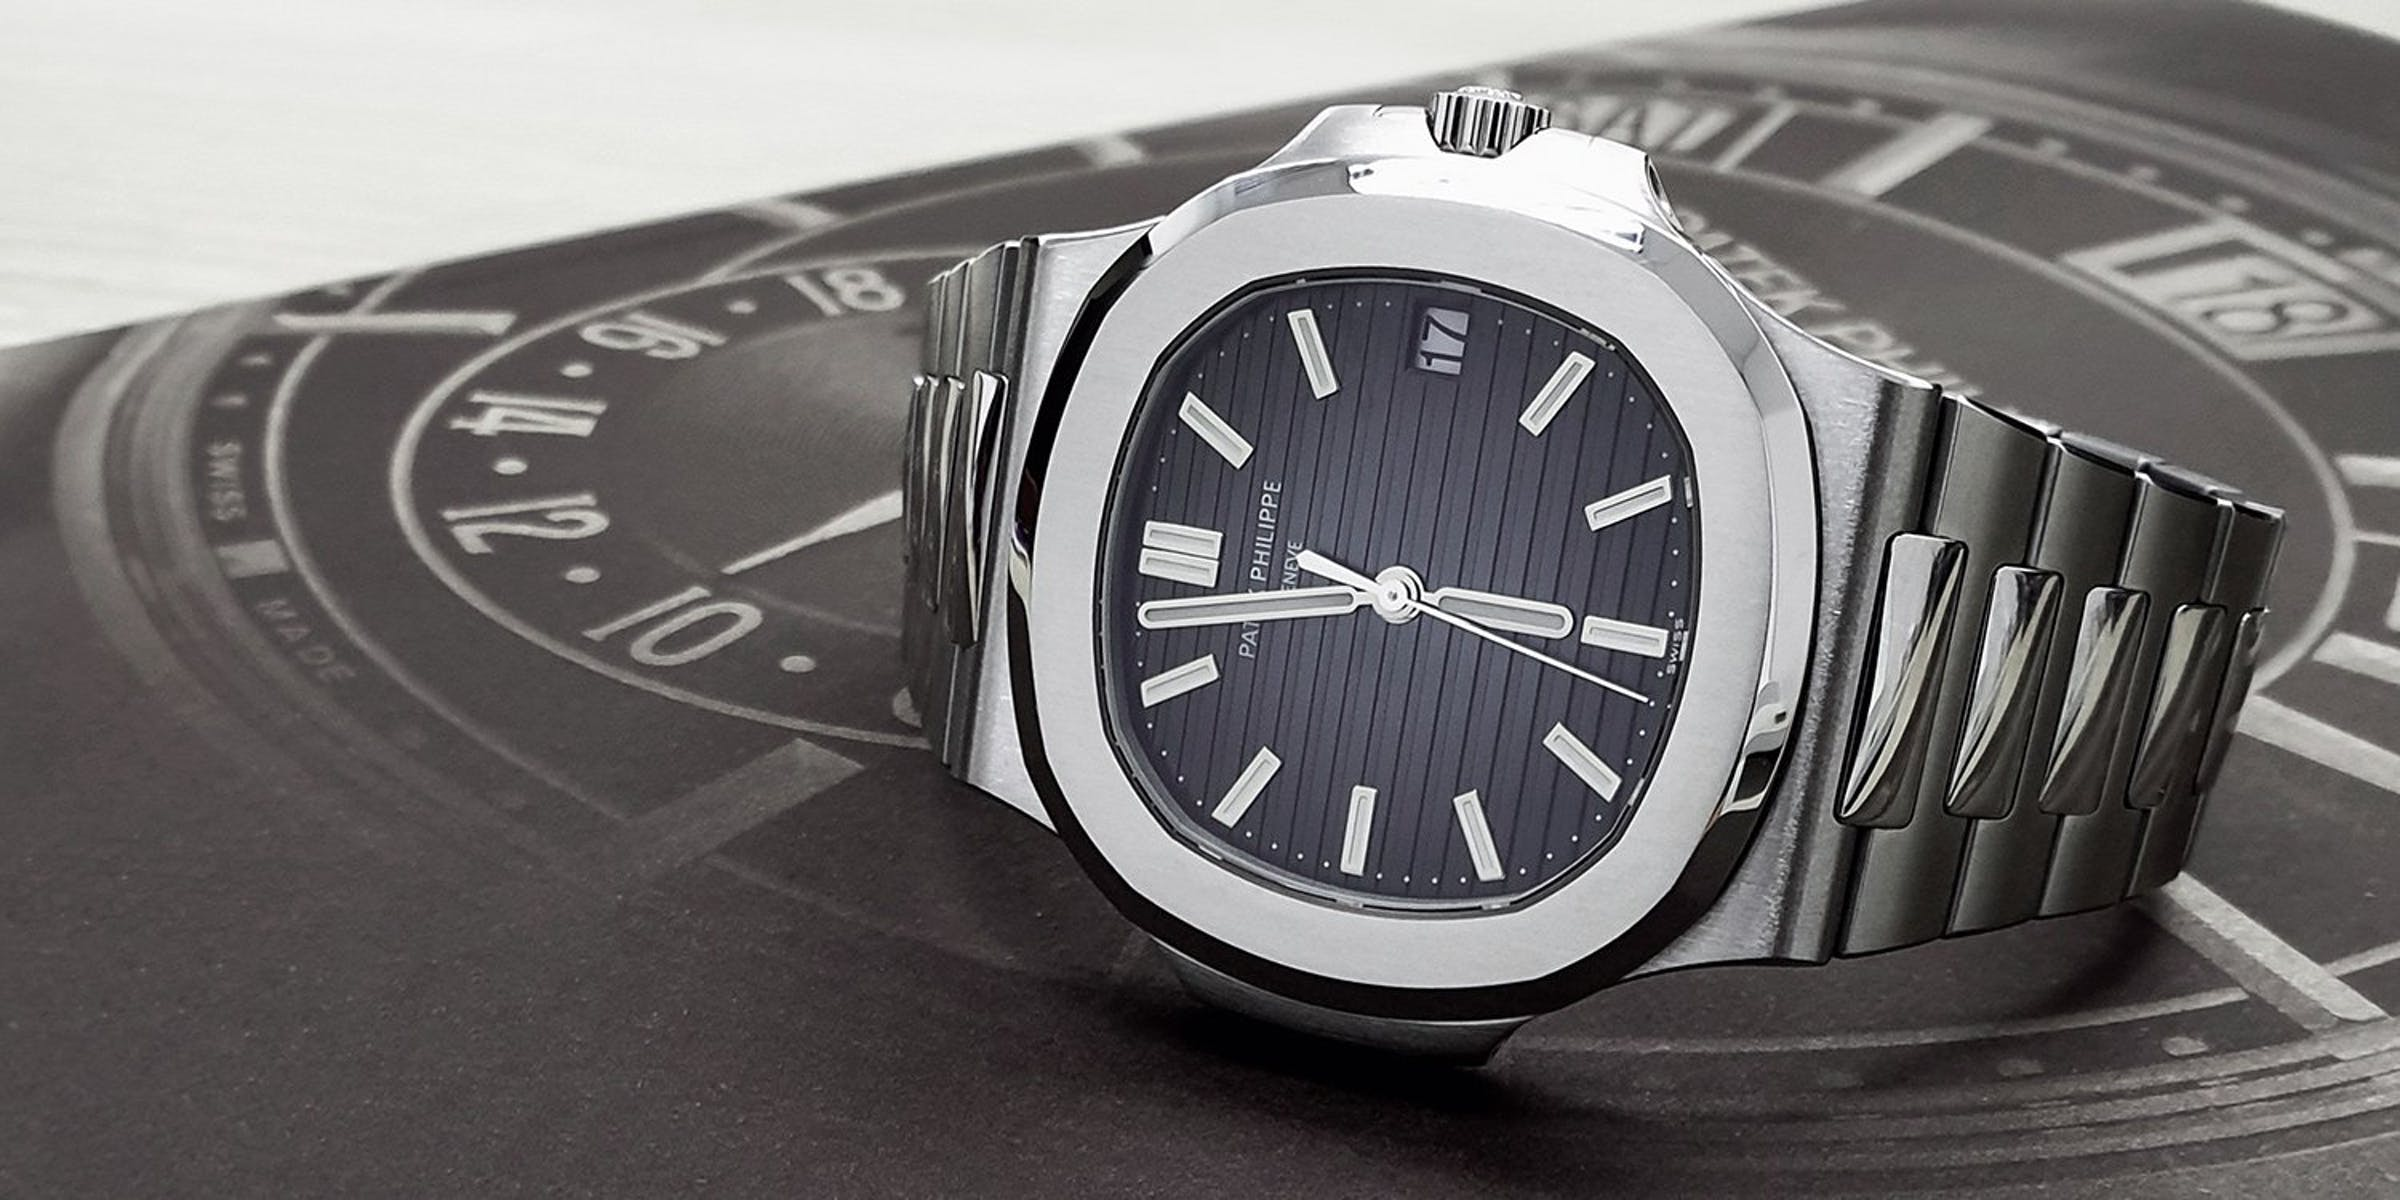 Patek Philippe Ceases Production of the Nautilus 5711: What's Next?